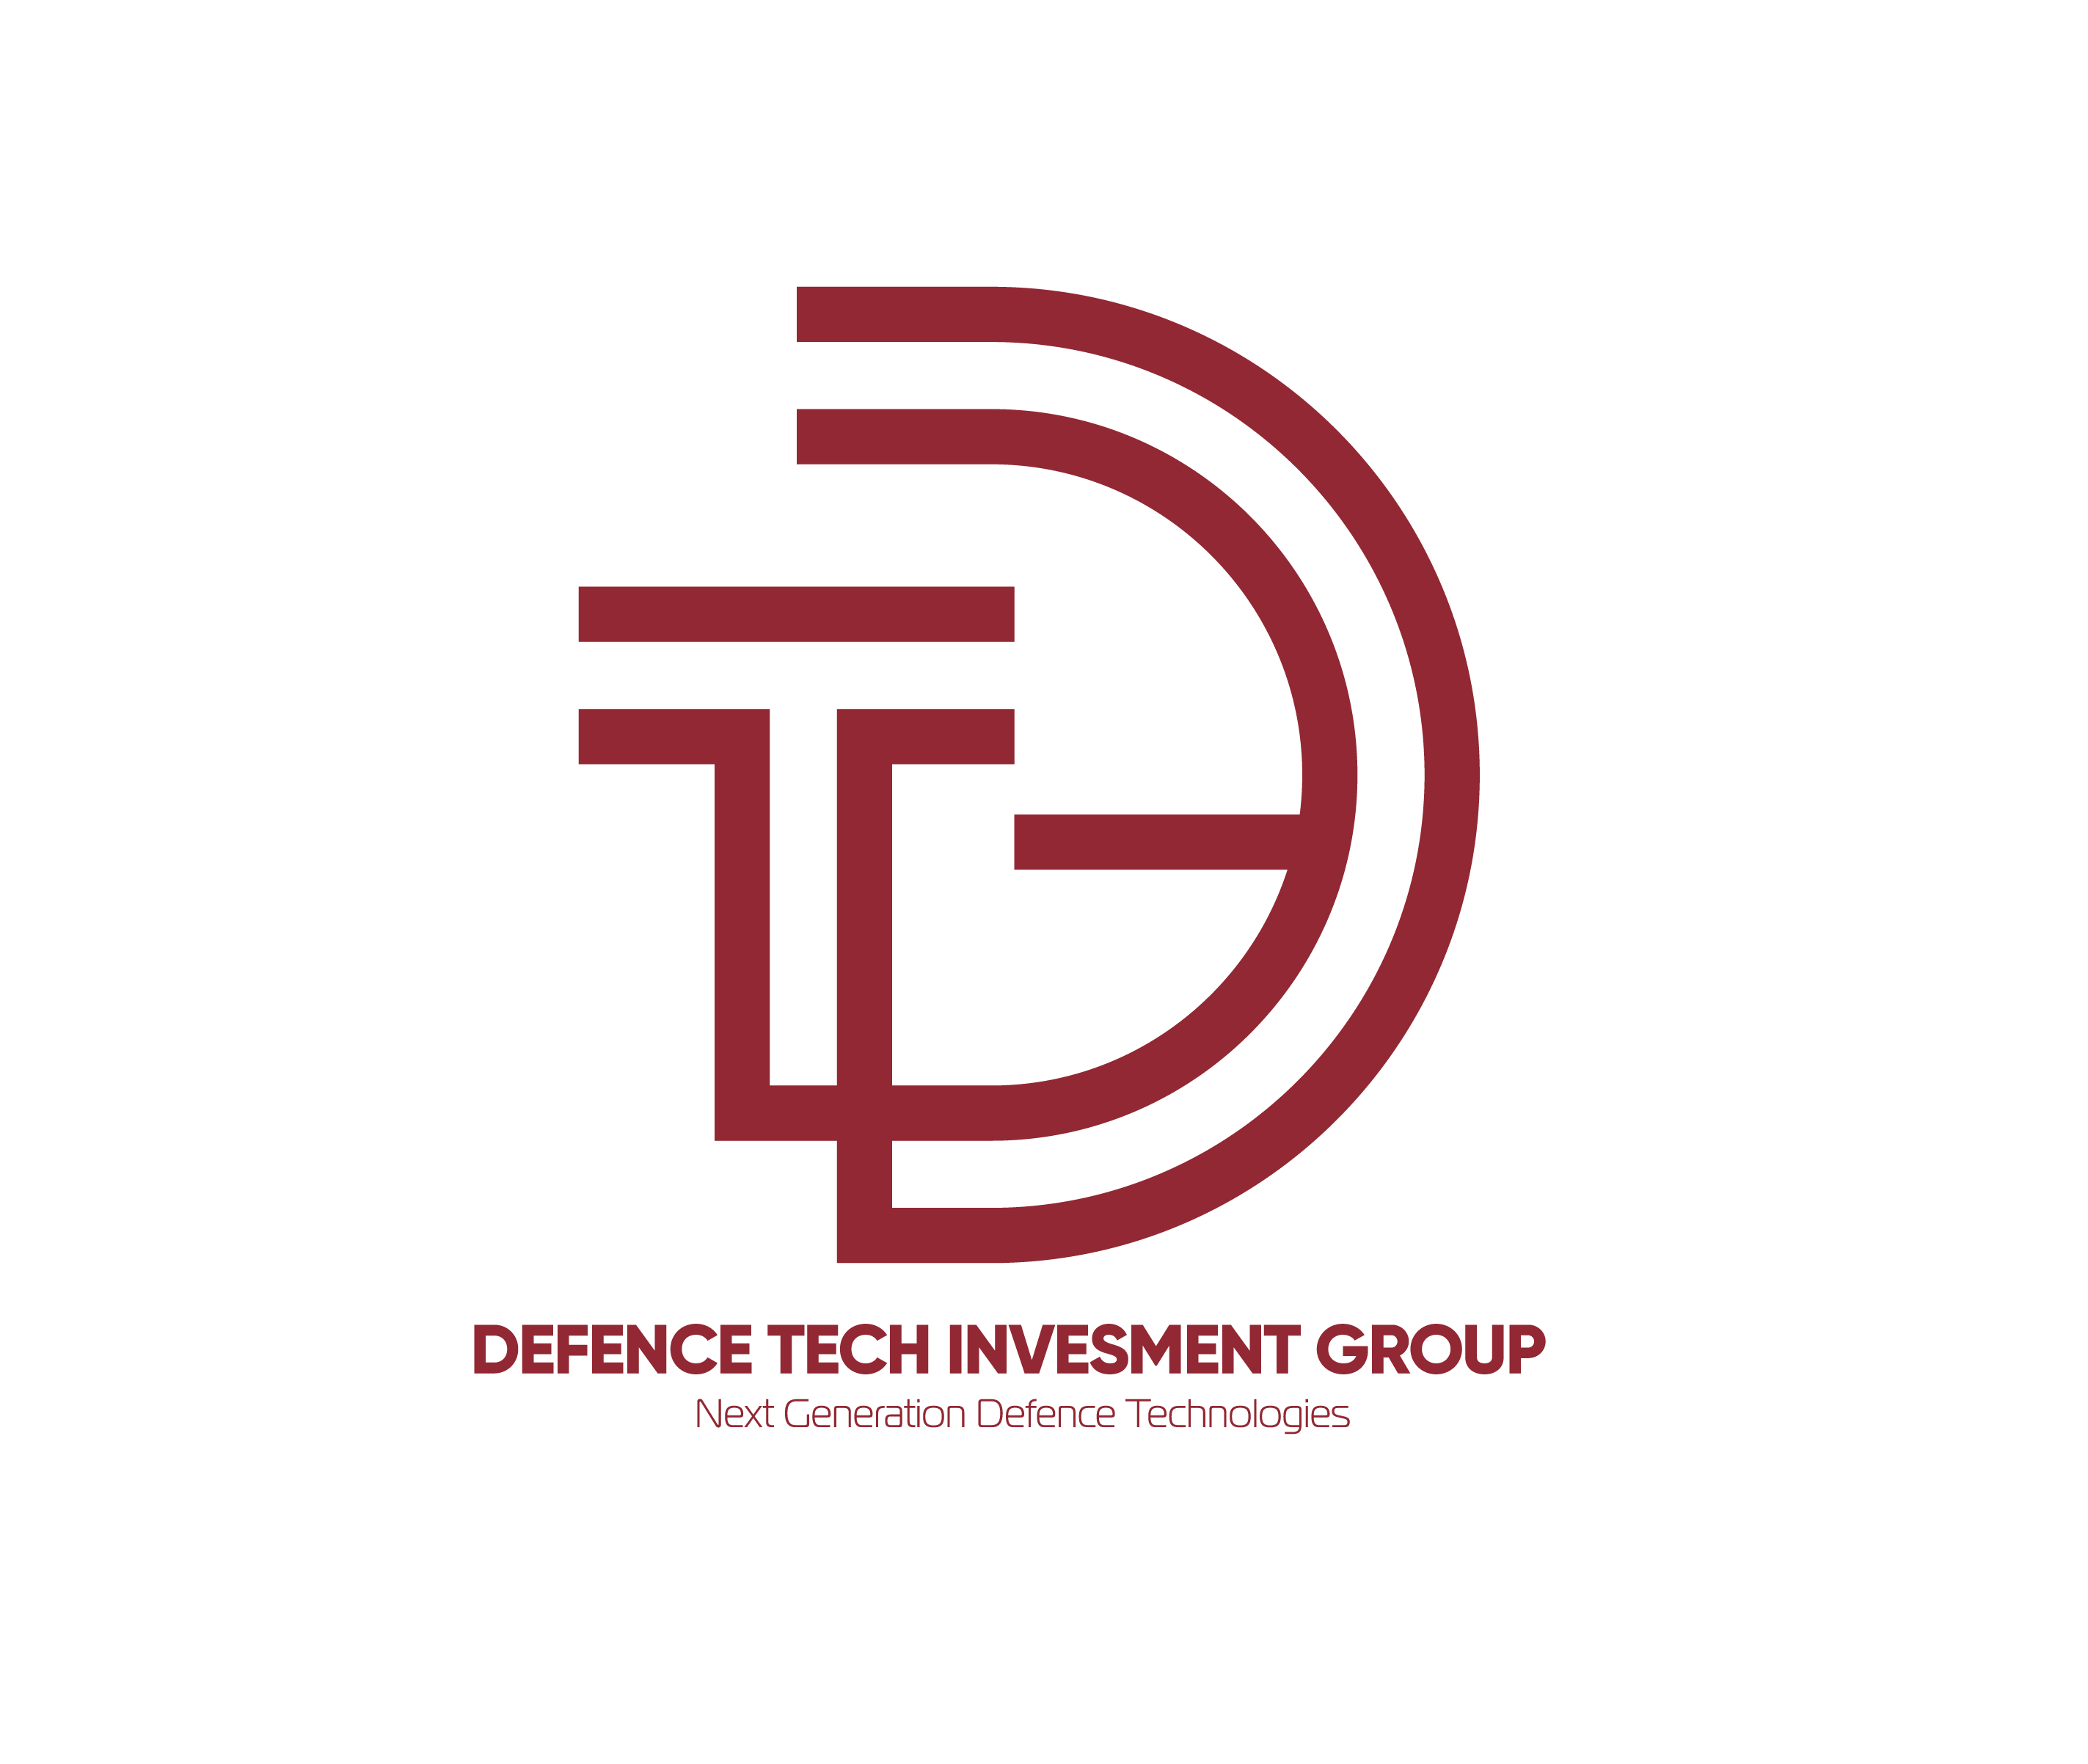 DEFENCE TECH INVESMENT GROUP